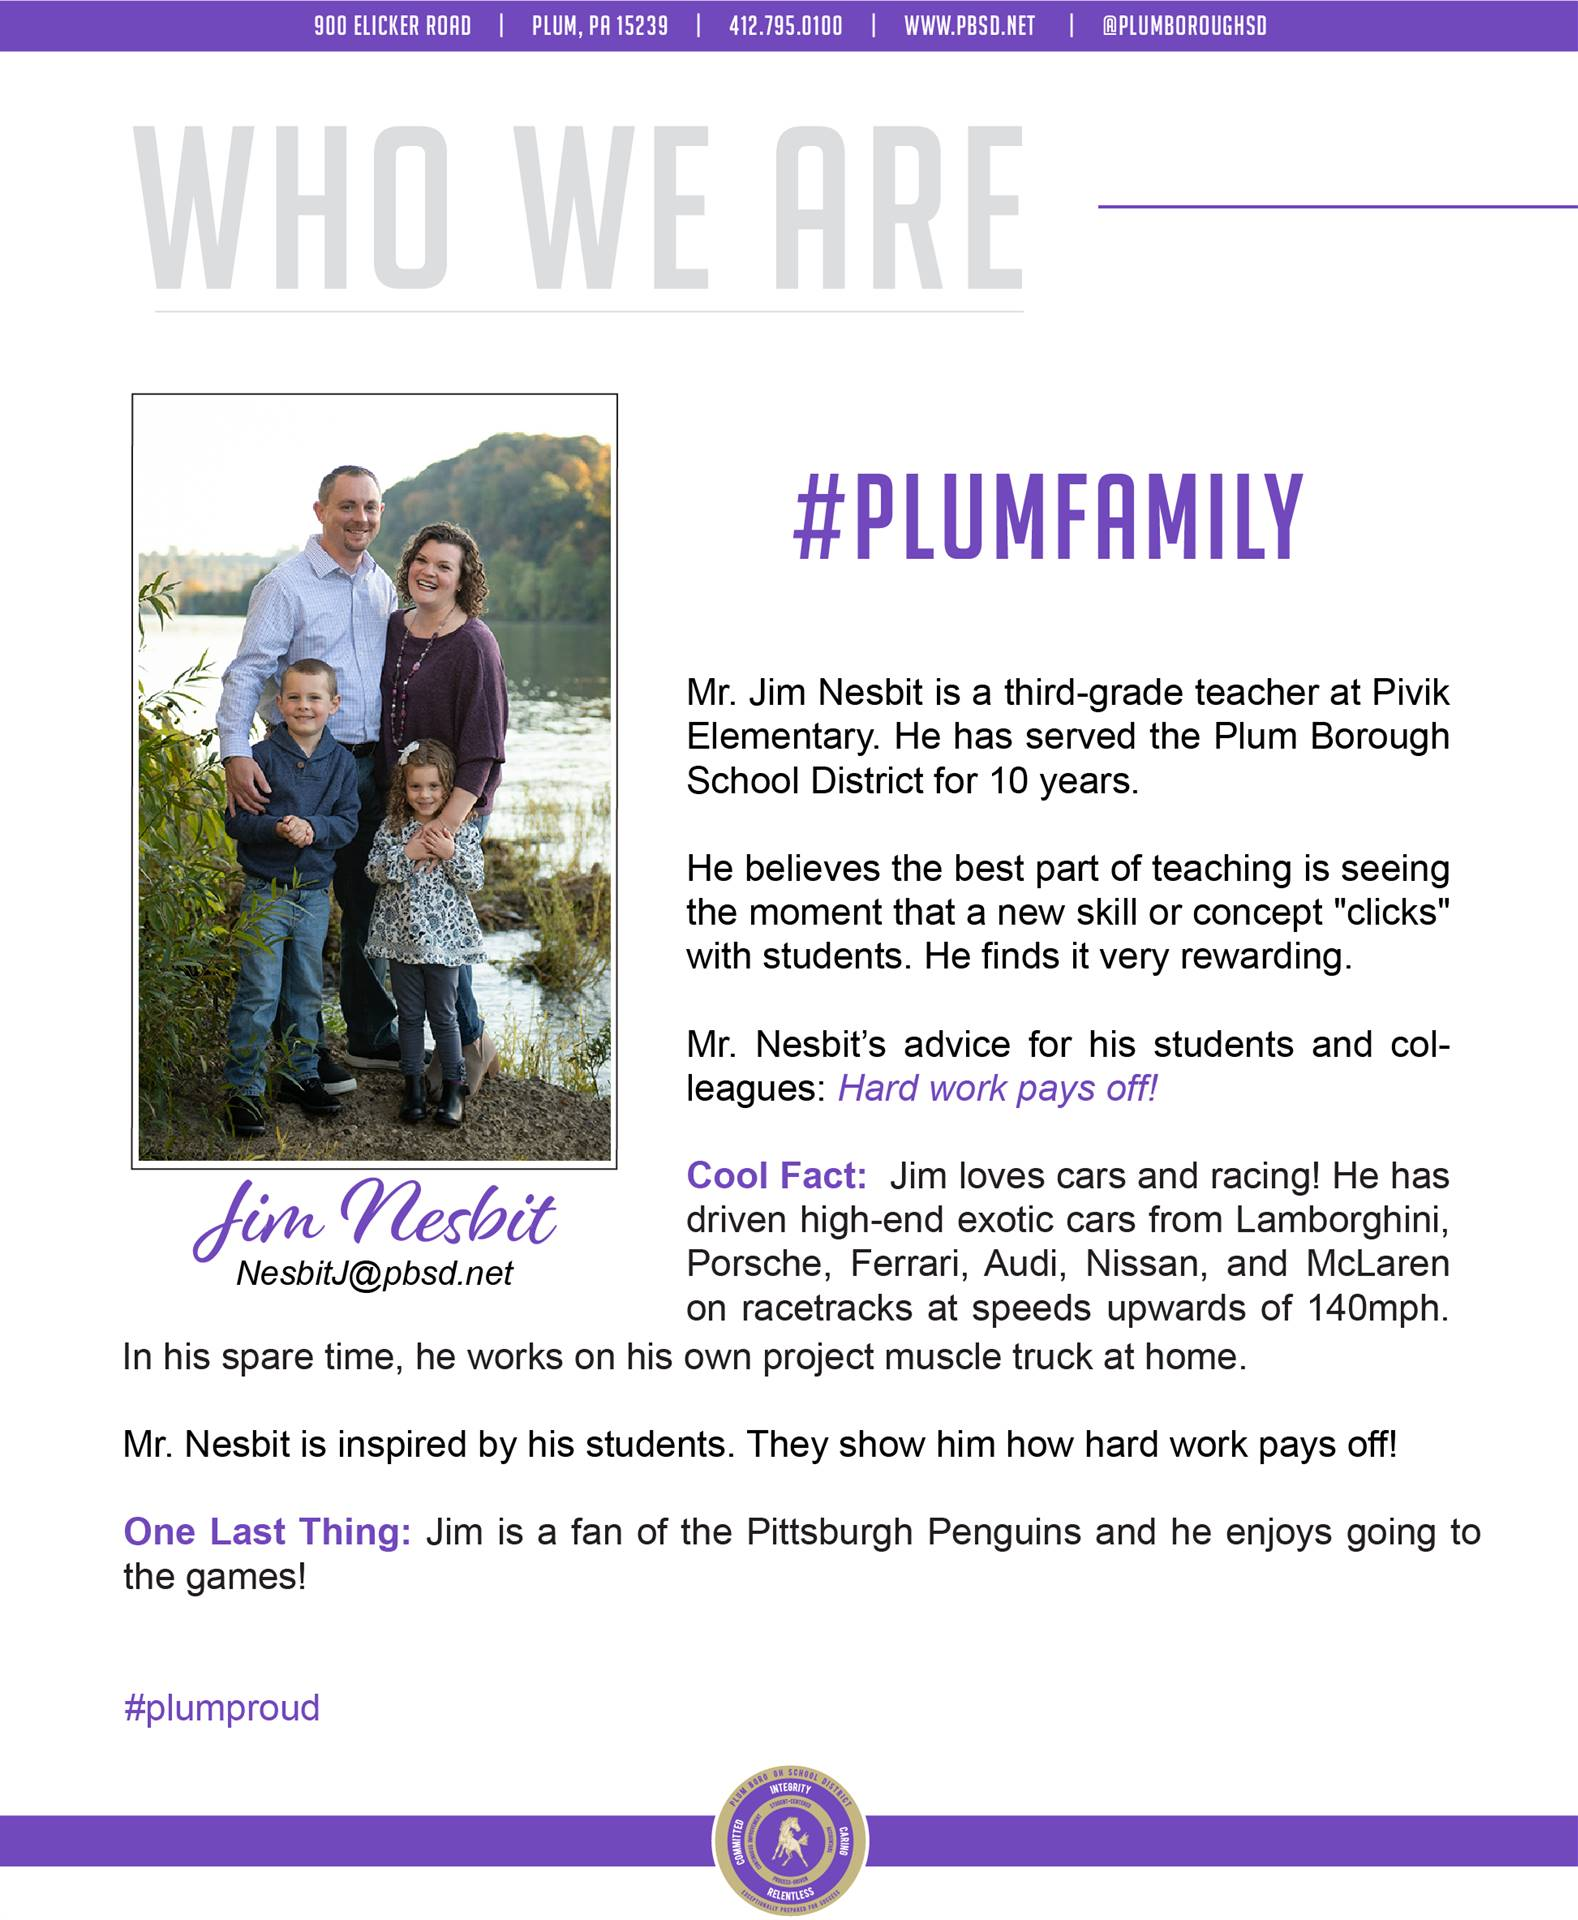 Who We Are Wednesday features Jim Nesbit.